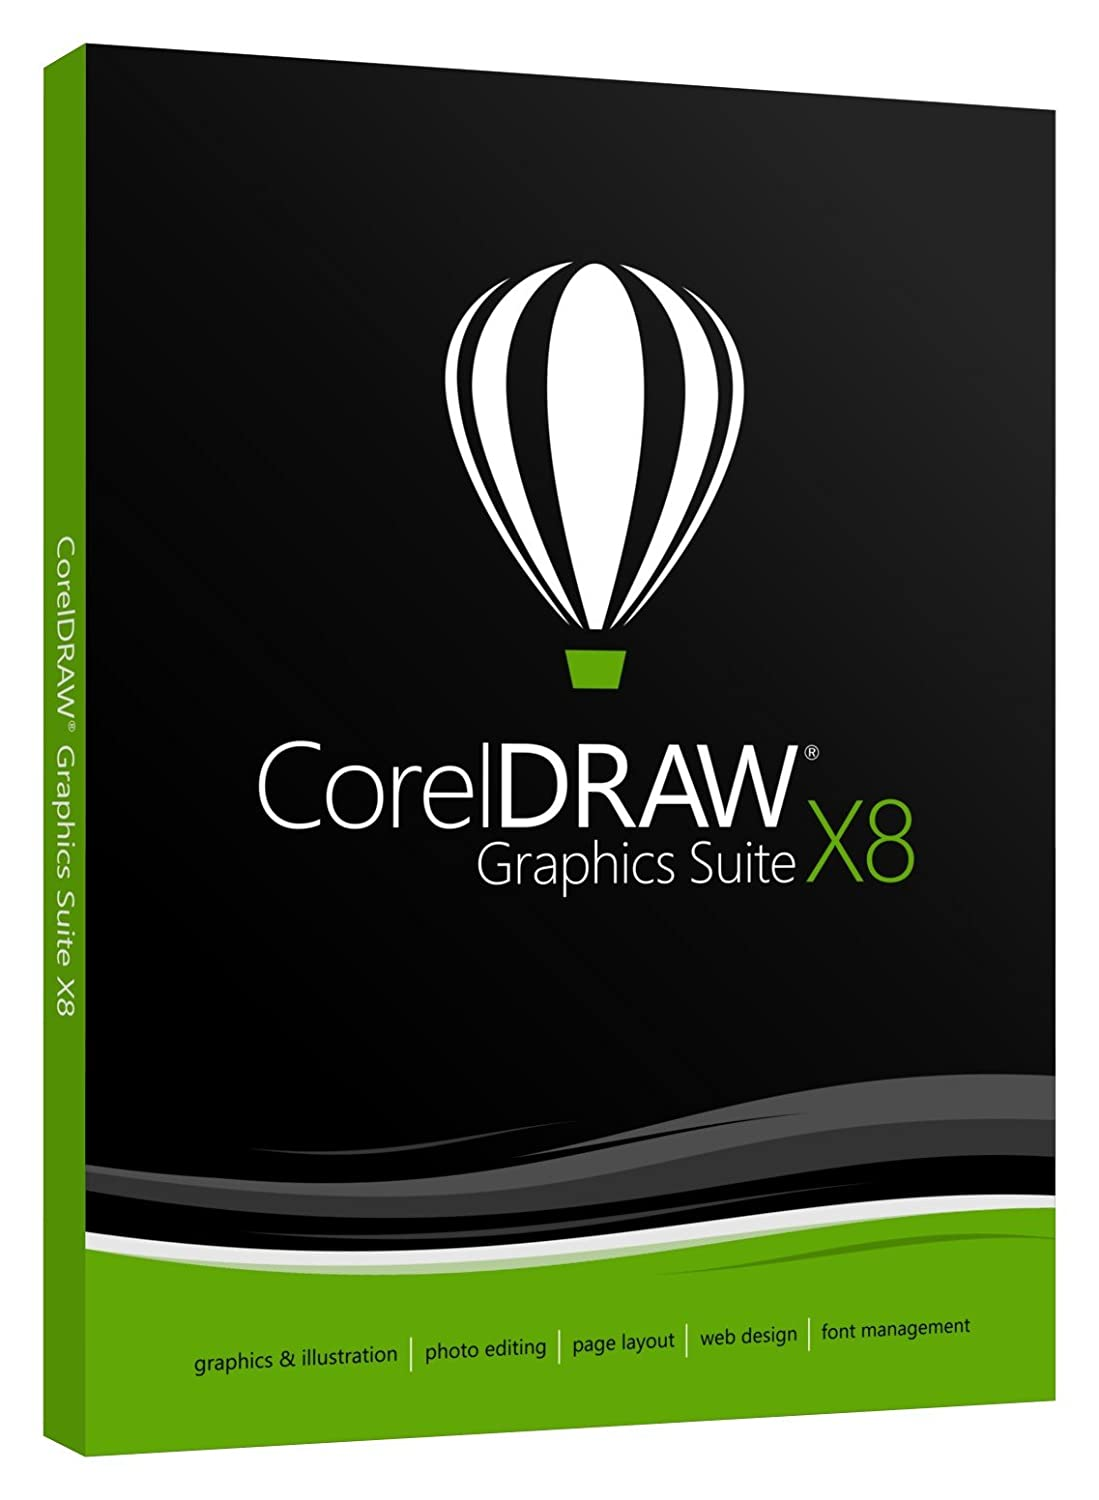 CorelDRAW Graphics Suite X8 Academic (Old Version)